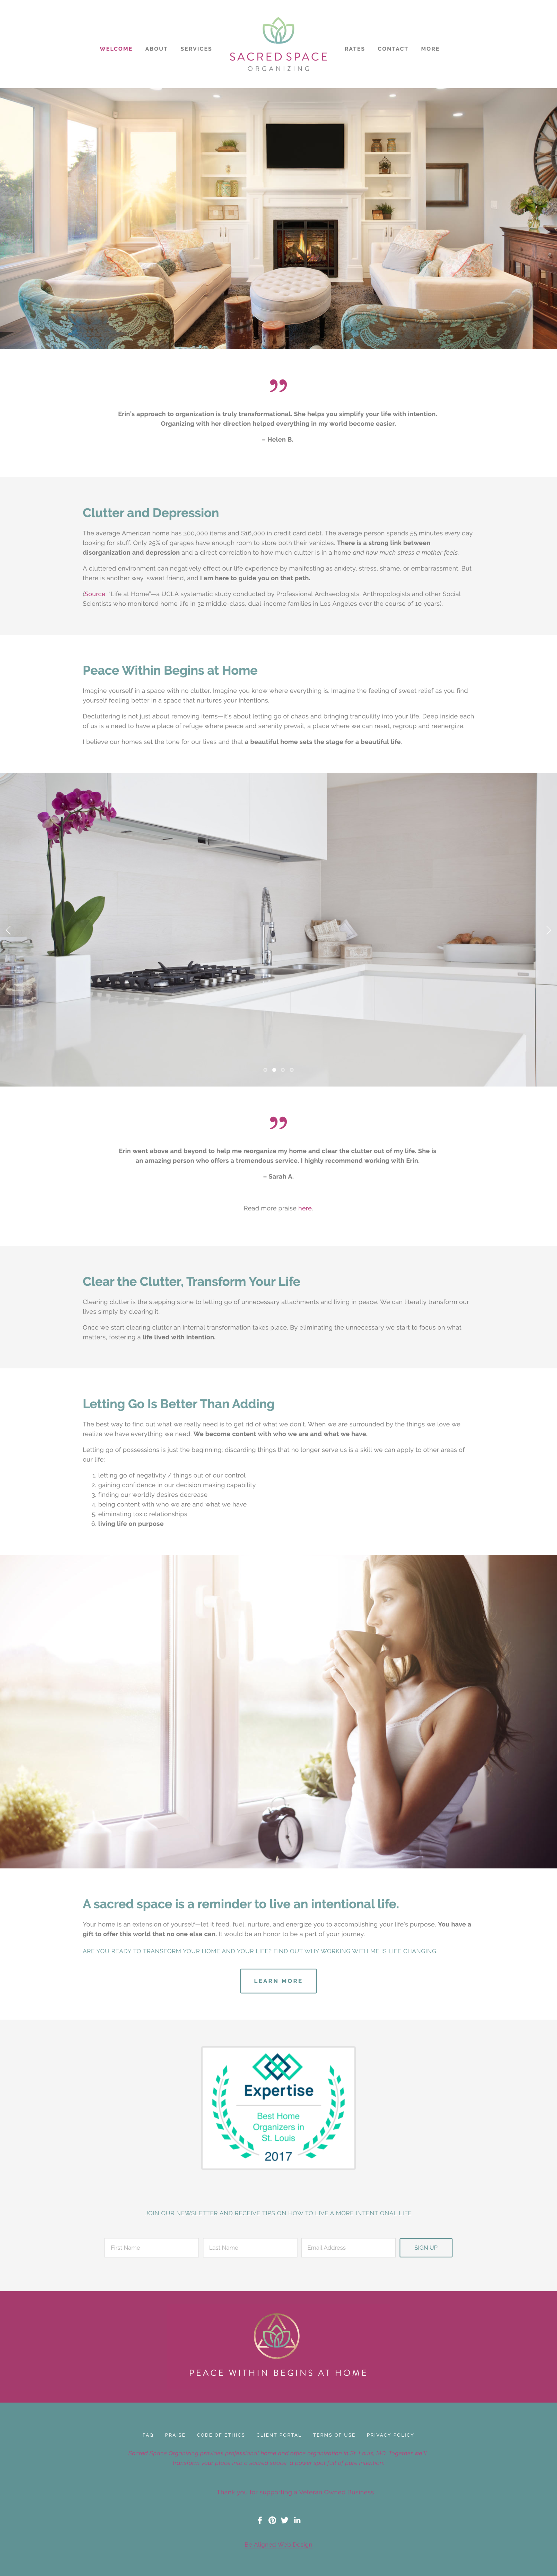 sacred-space-organizing-home-page.png